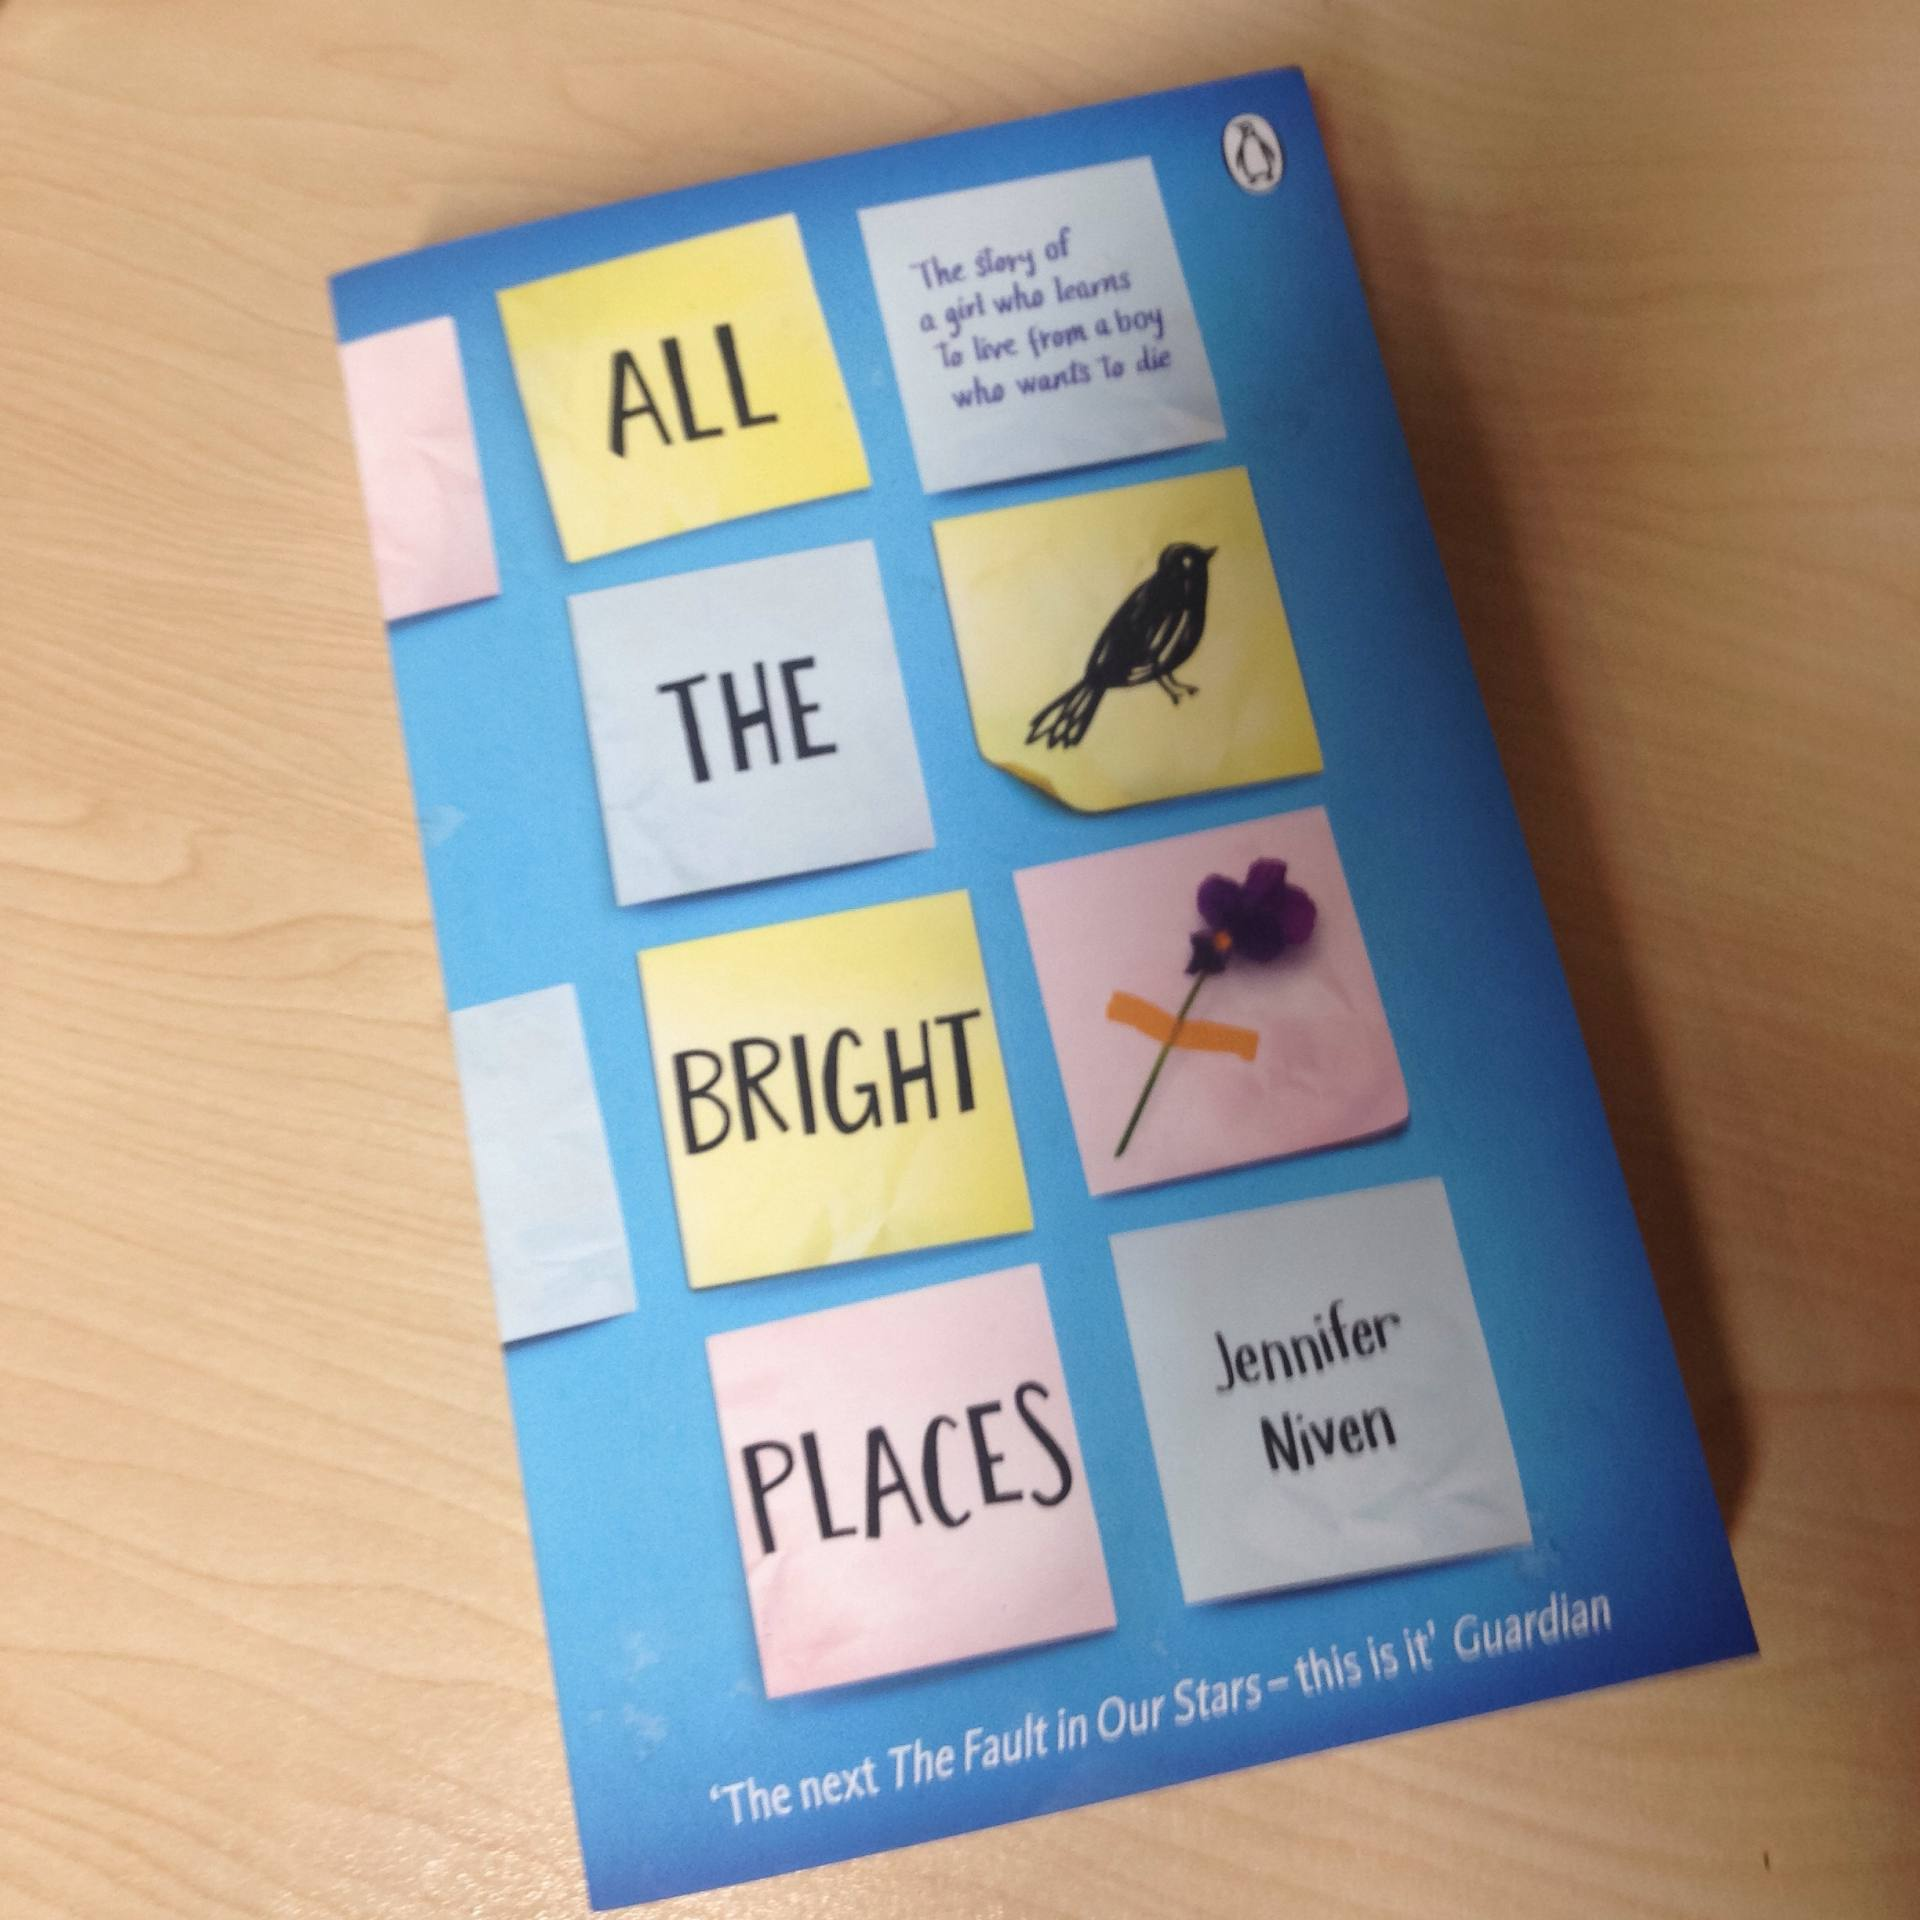 Recommended Reading: All the bright places